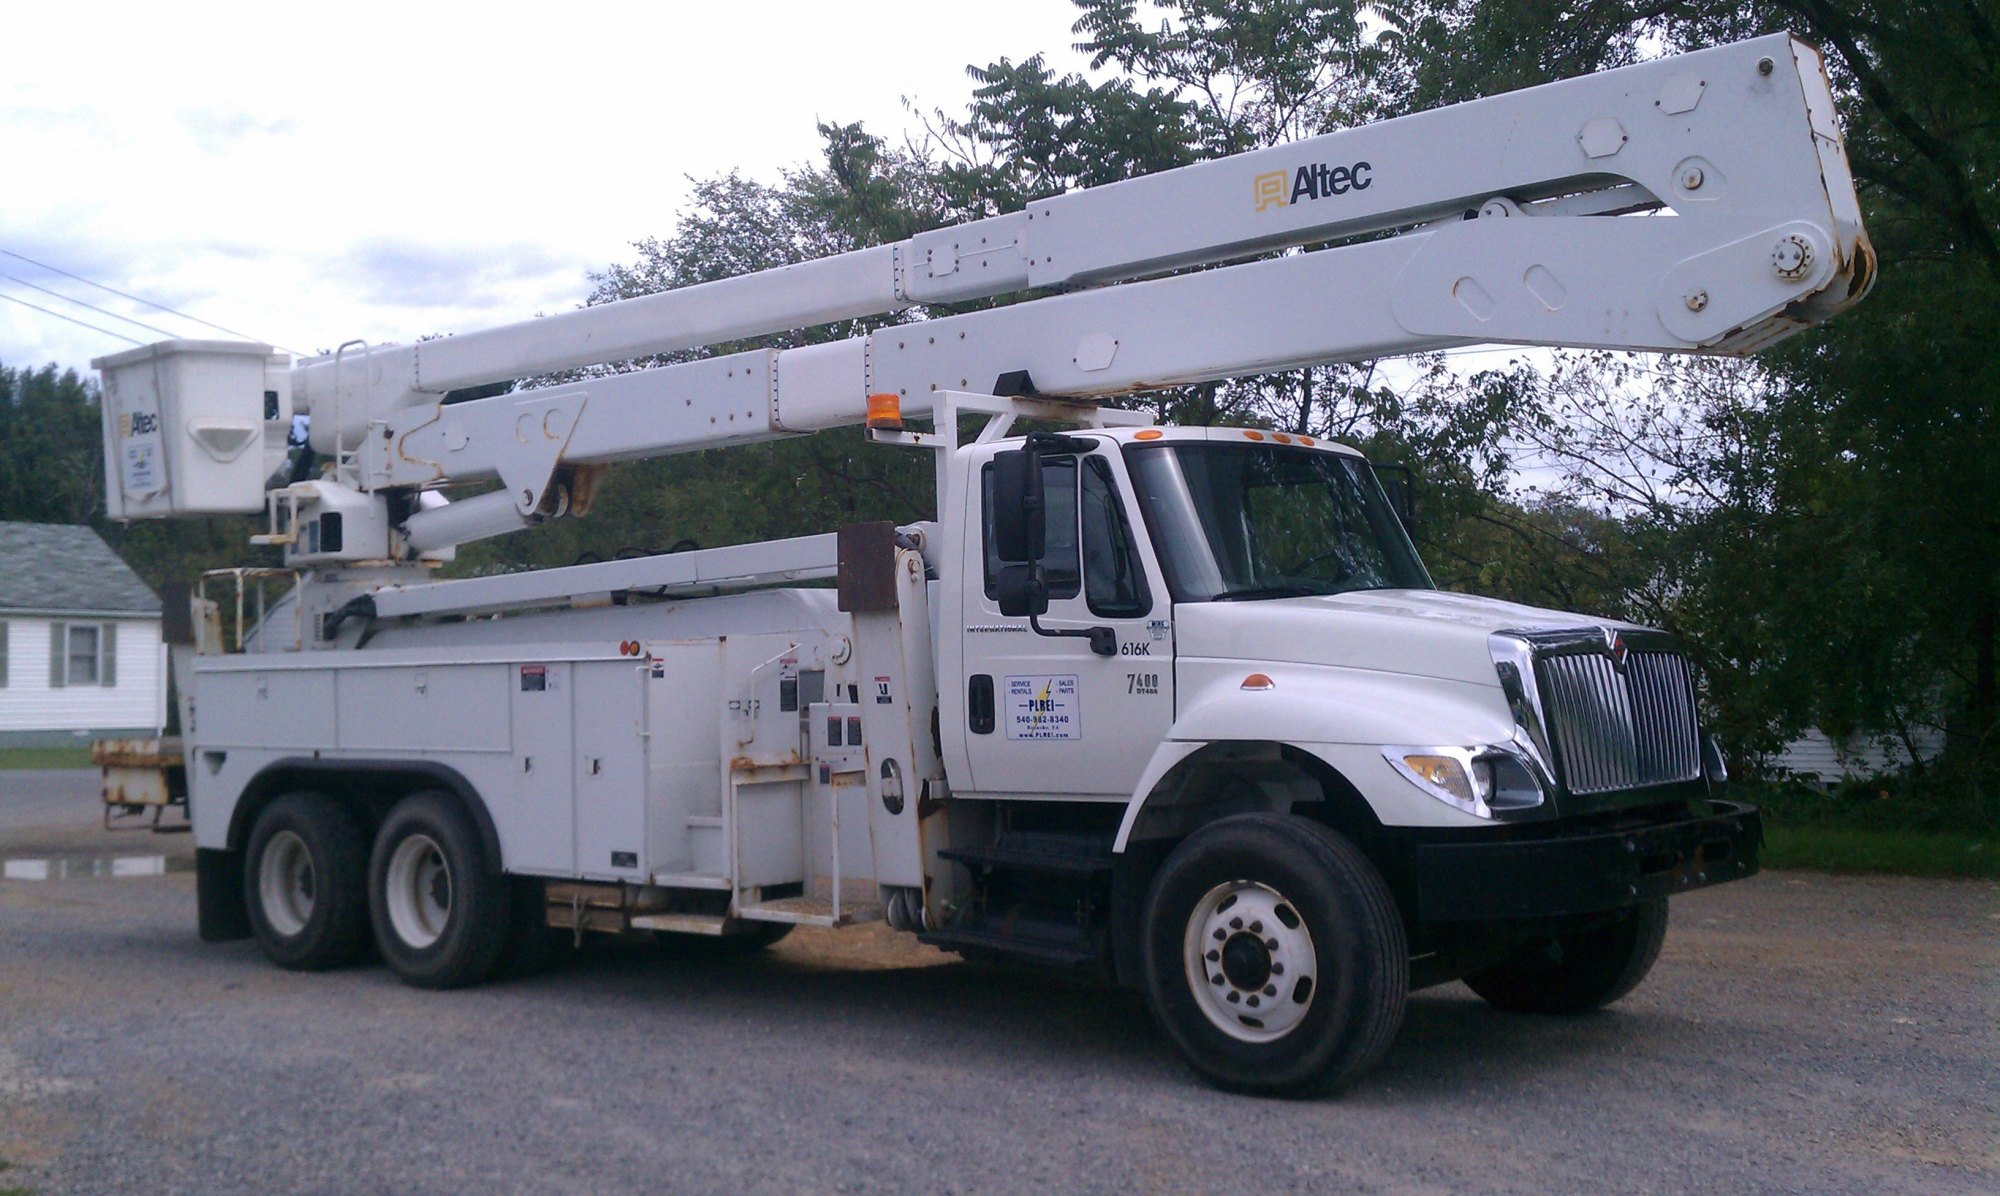 hight resolution of  altec model a77 te93 material handler s n 0106ct0902 max platform height 93 ft max working height 98 ft extendable f r p upper boom insulated